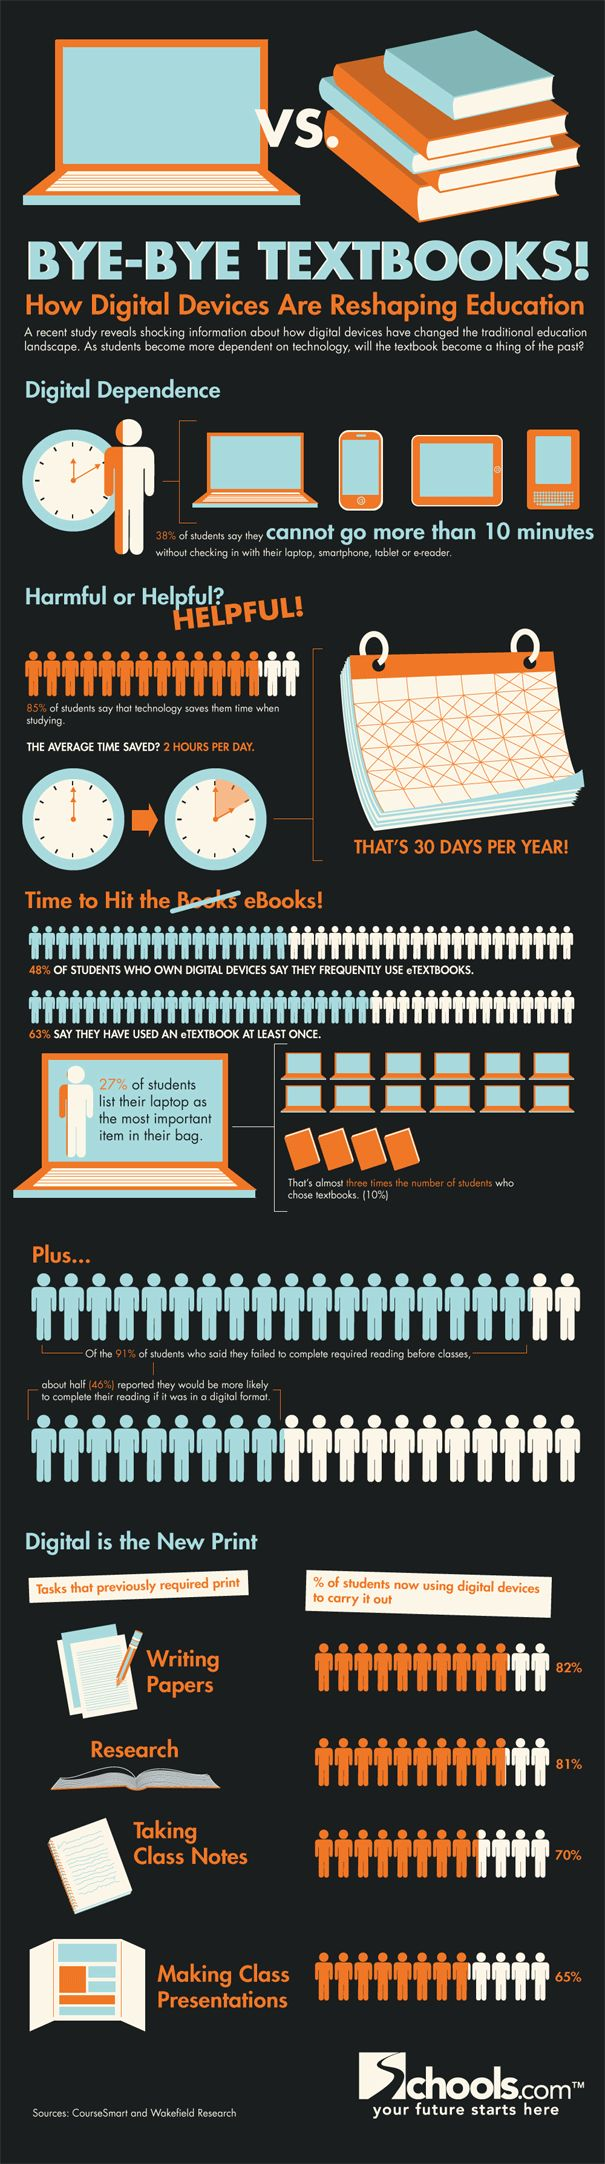 How Digital Devices are Reshaping Education #infographic #edchat #edtech